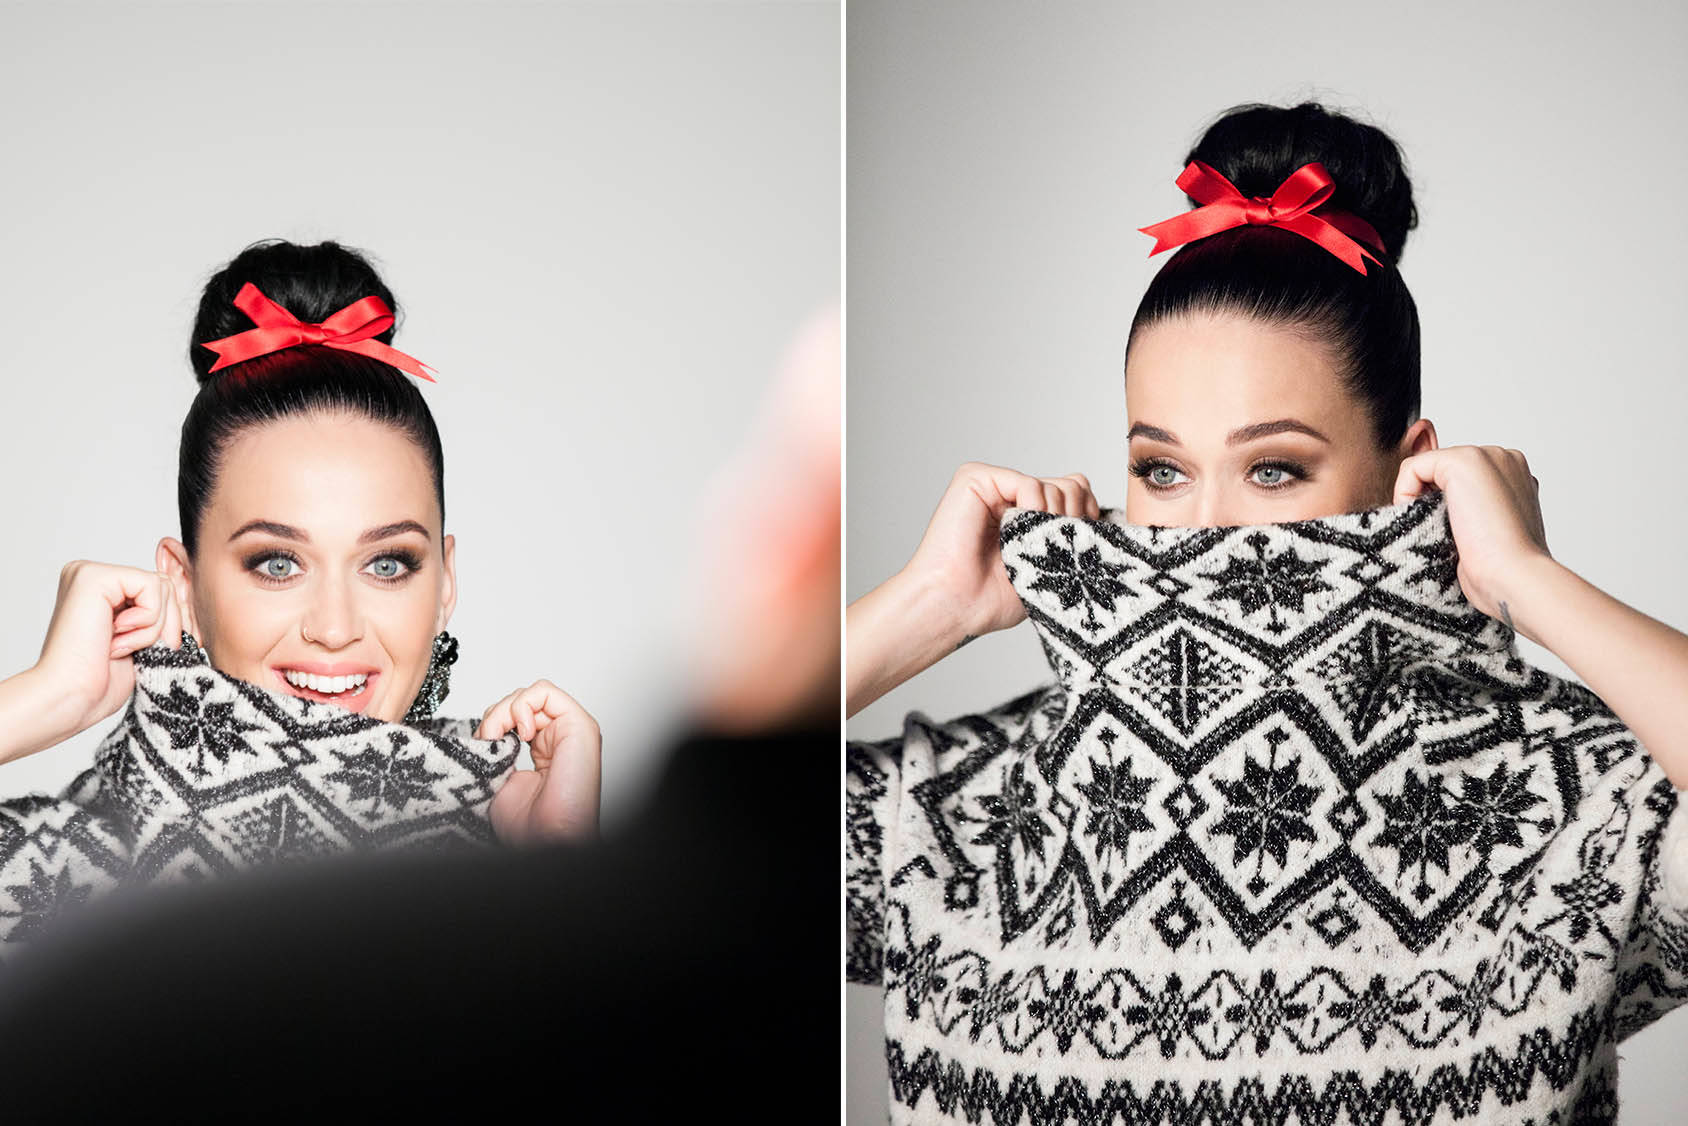 KATY PERRY IS THE STAR OF H&M HOLIDAY 2015